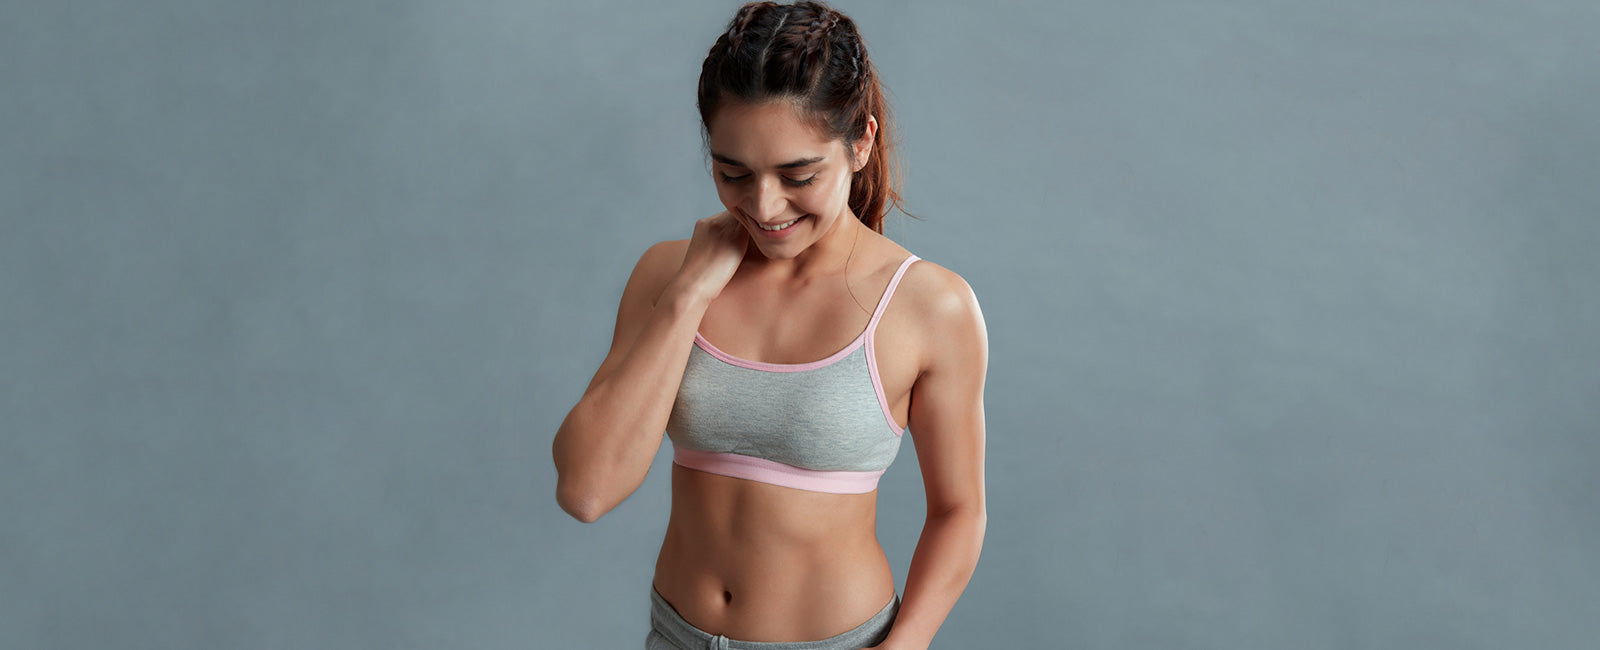 e844ef79a721a Buy the Essential T-shirt Bralette Online for Women in India - BRAG